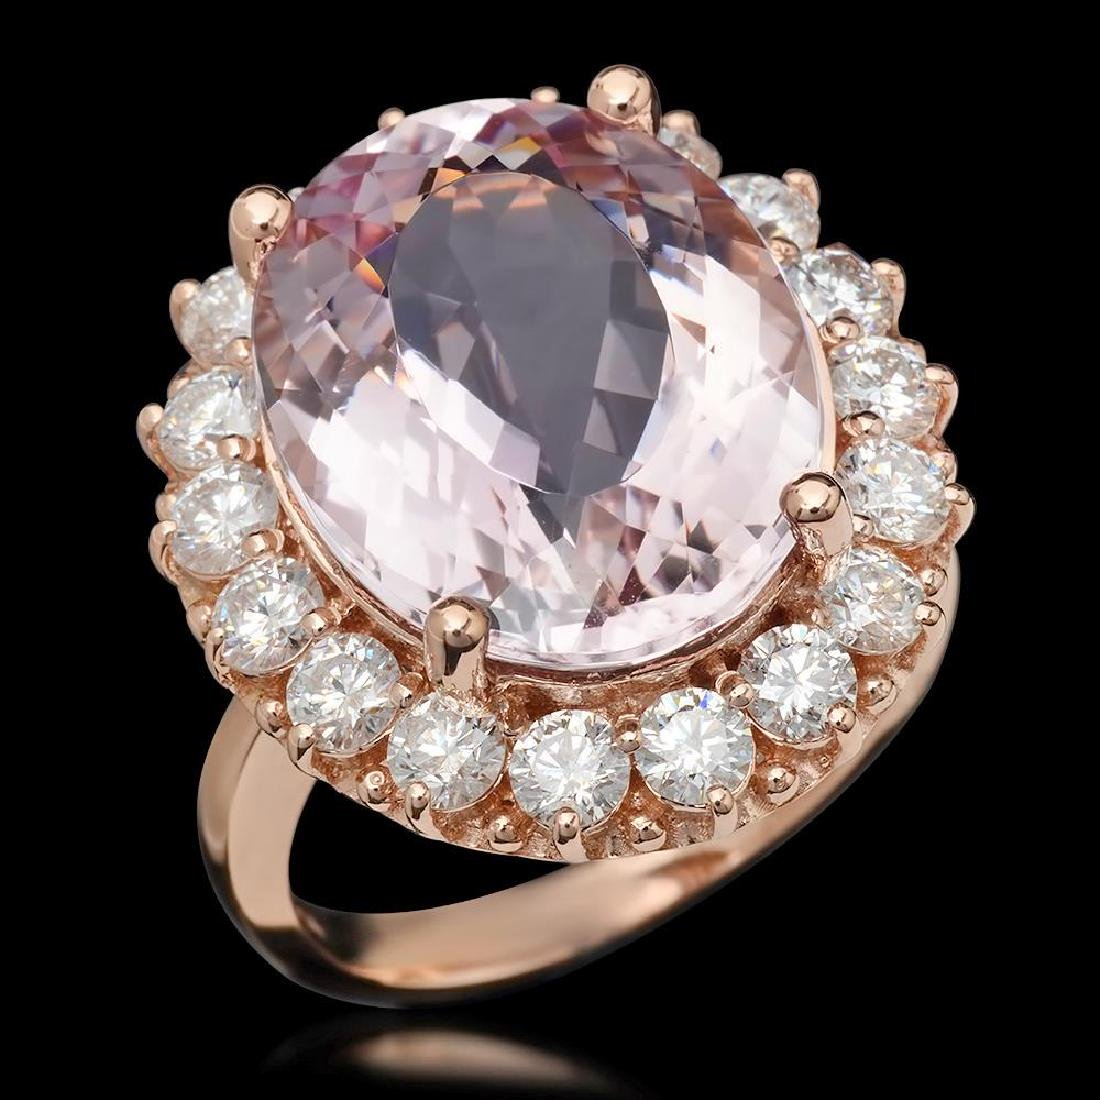 14K Gold 13.13ct Kunzite 2.22ct Diamond Ring